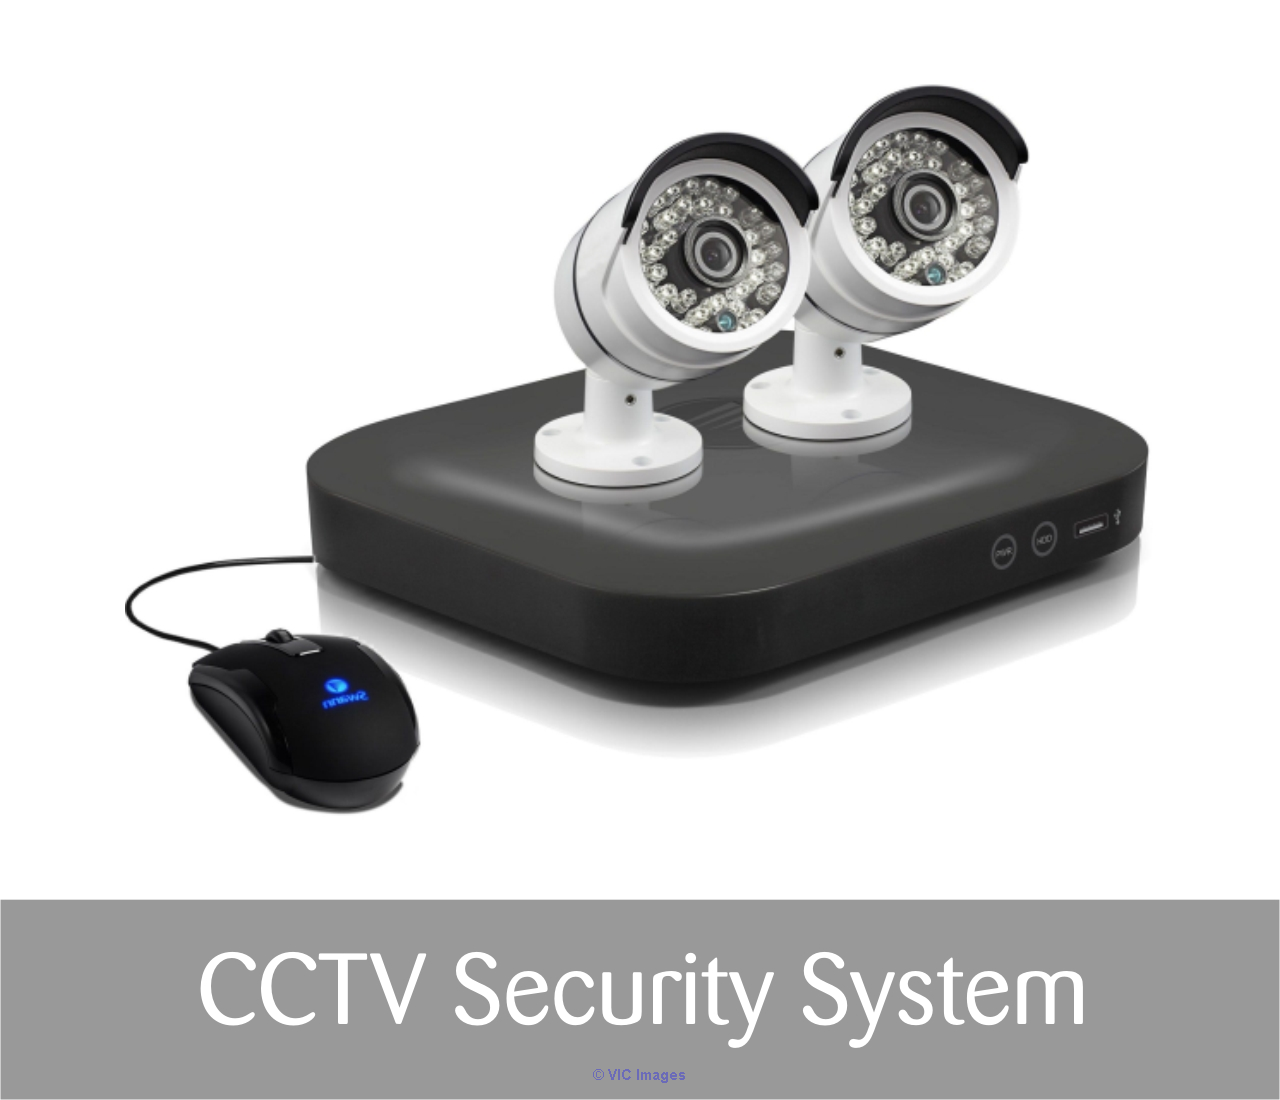 CCTVKart.com -CCTV Security System, Fire Alarms Systems, Rajasthan Ottawa, Ontario, Canada Classifieds